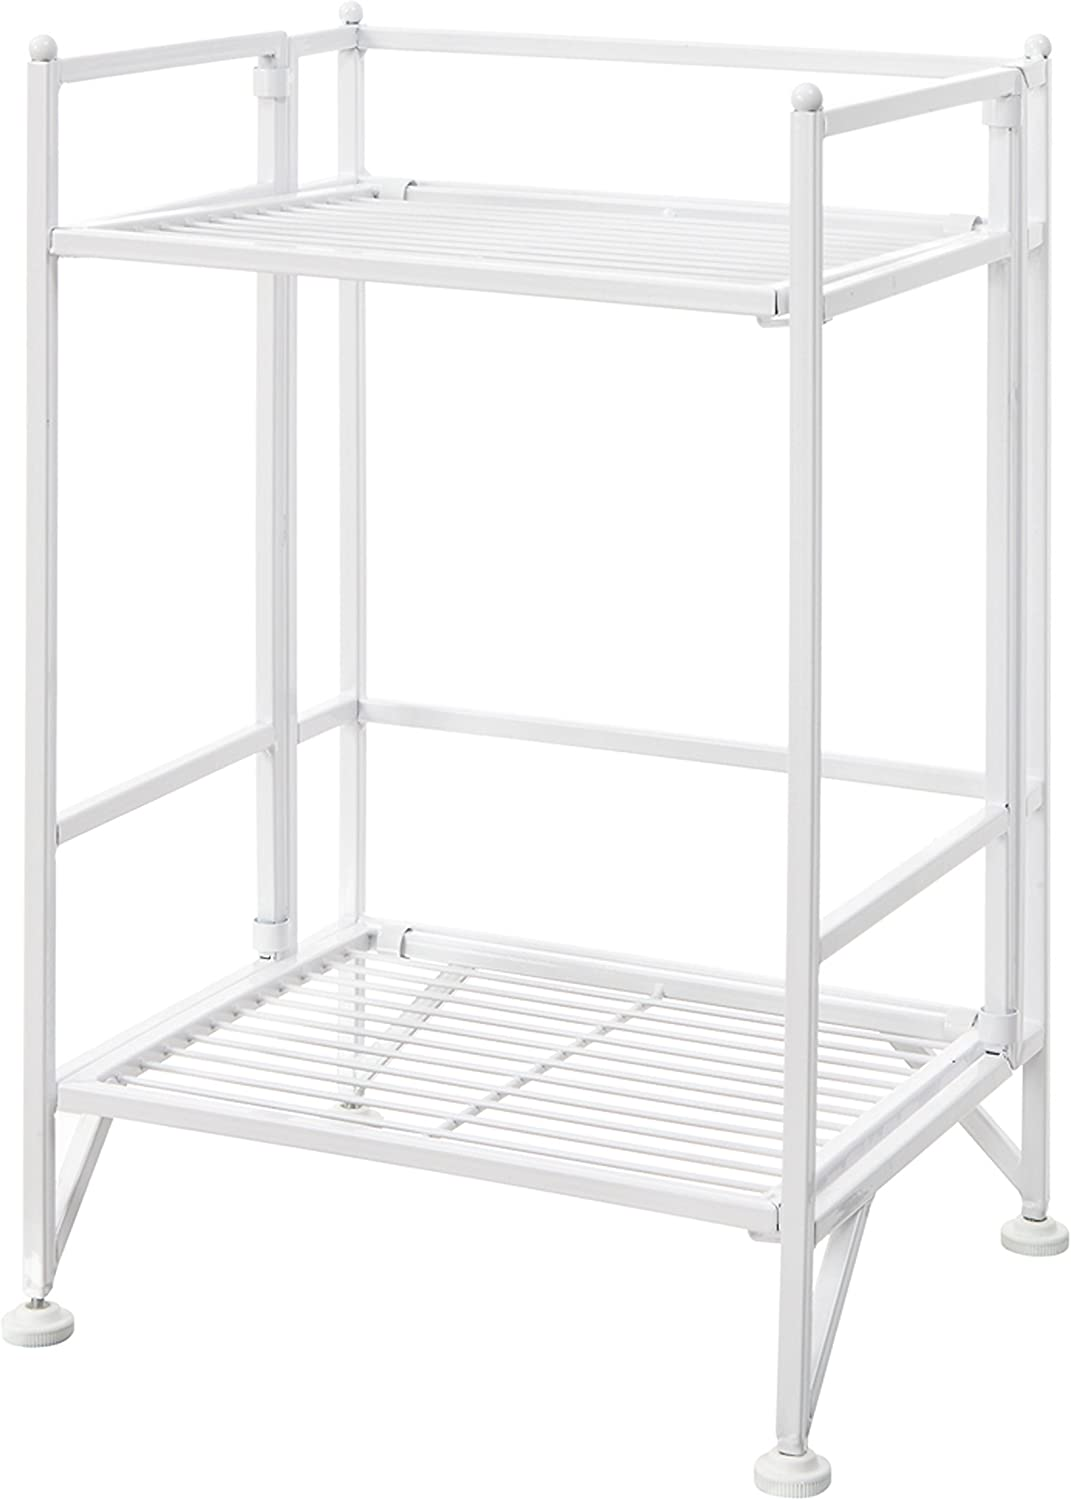 Convenience Concepts Xtra Storage 2 Tier Folding Metal Shelf, White